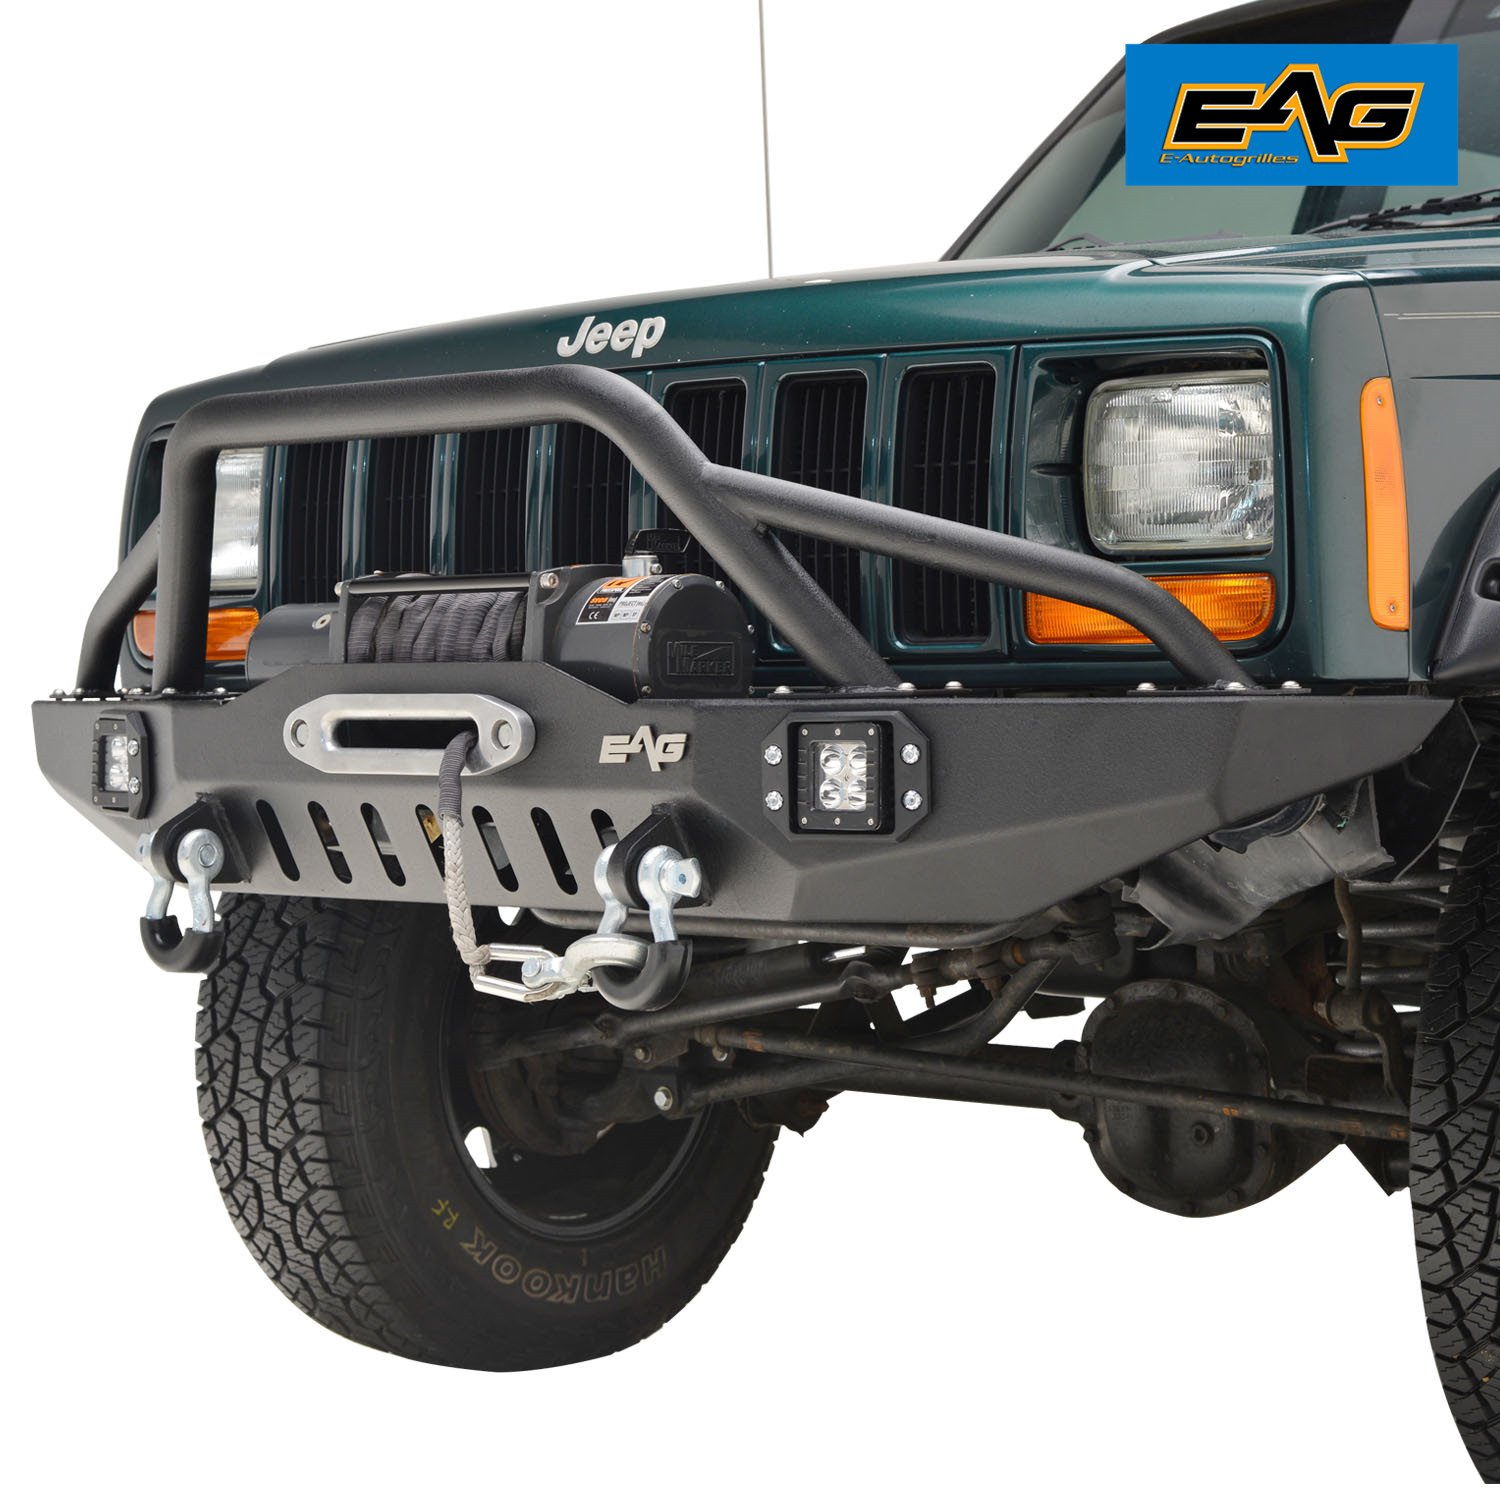 EAG Front Bumper with LED Lights & Winch Plate for 84-01 Jeep Cherokee XJ